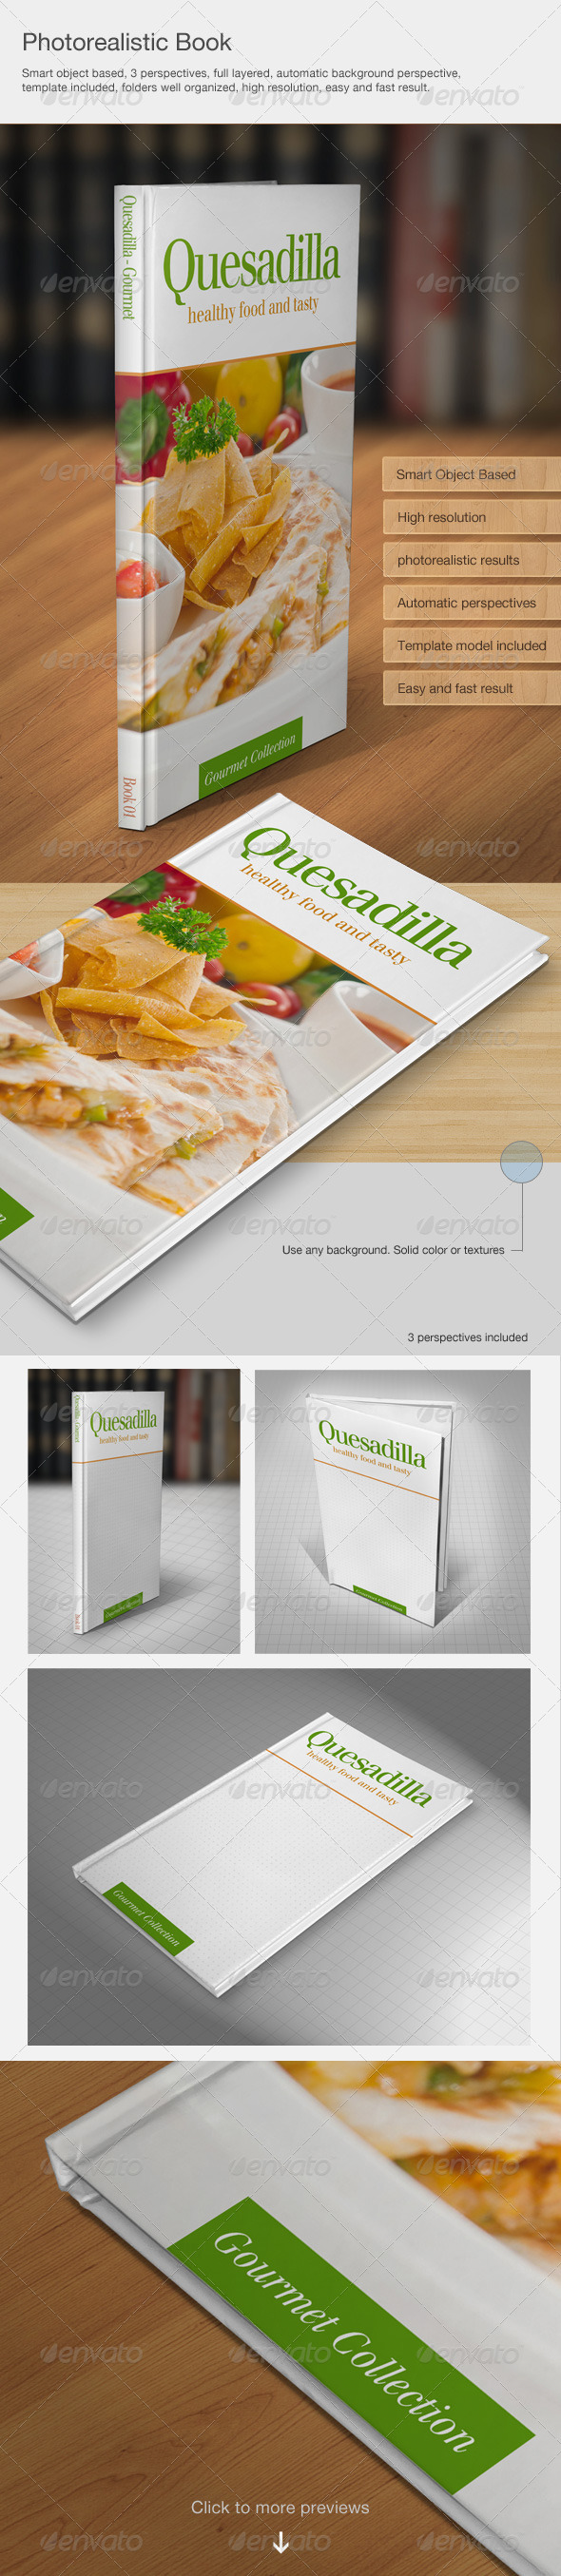 GraphicRiver Photorealistic book 5361180